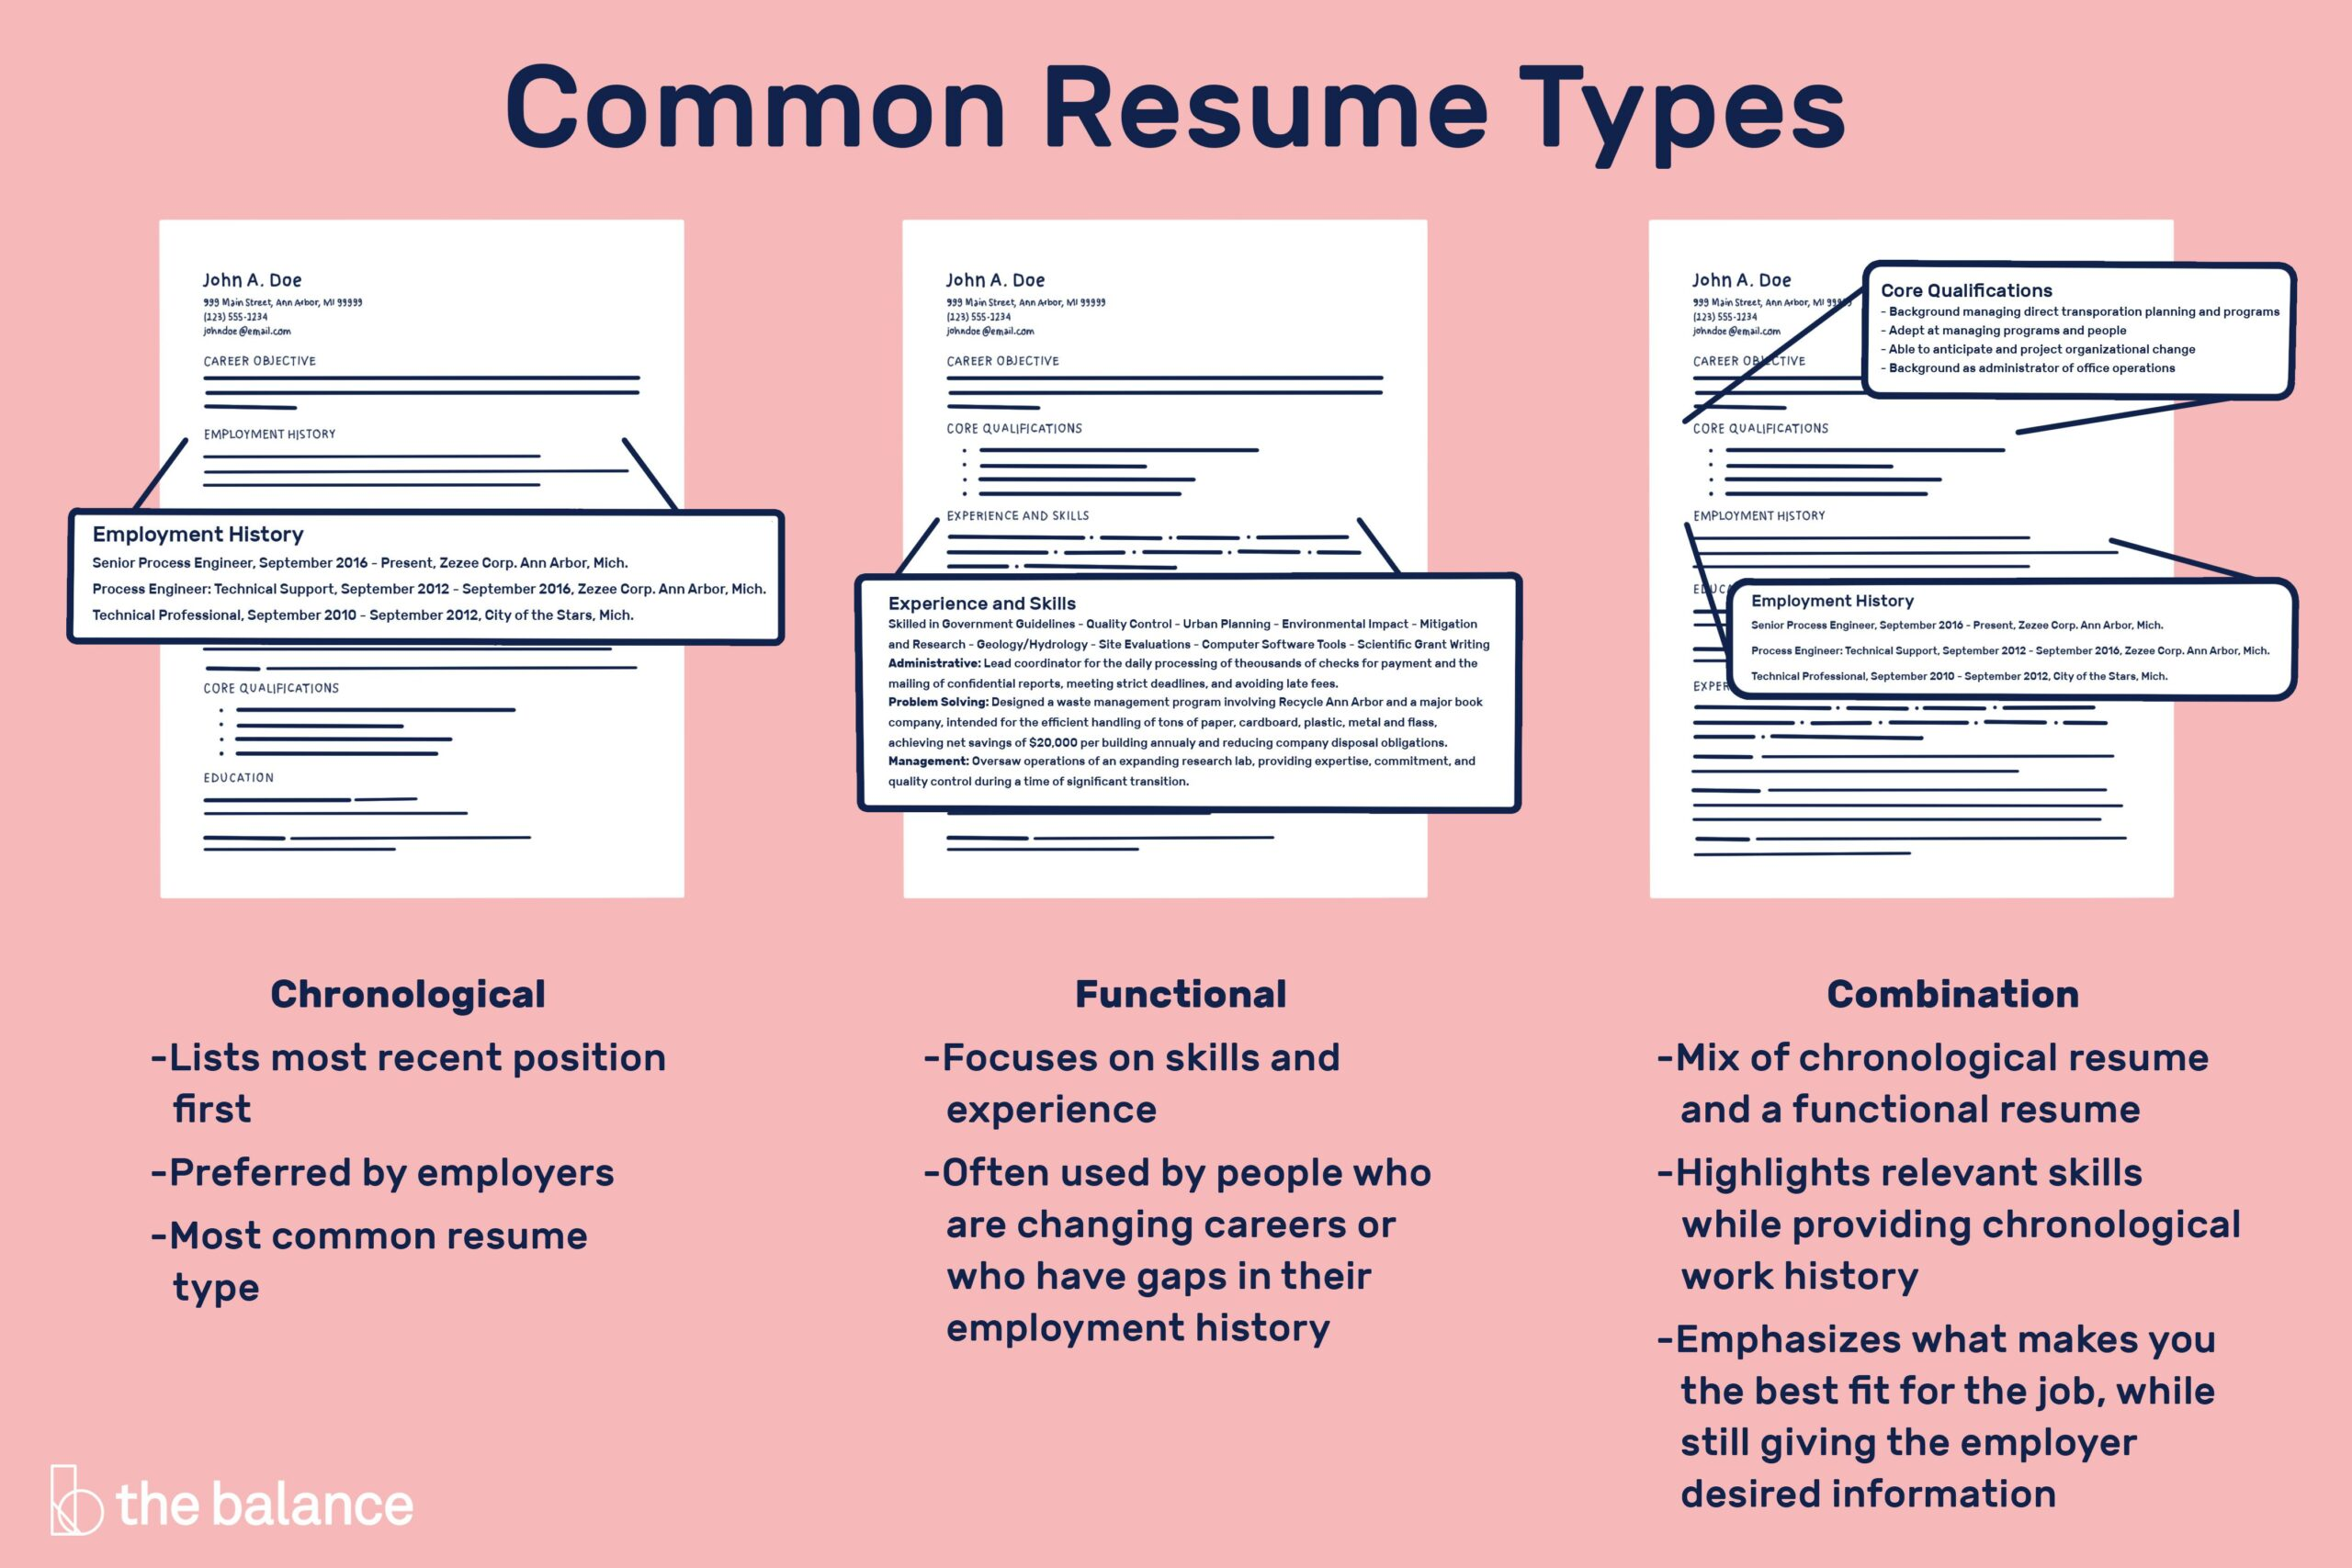 different resume types with one job history chronological functional combination Resume Resume With One Job History